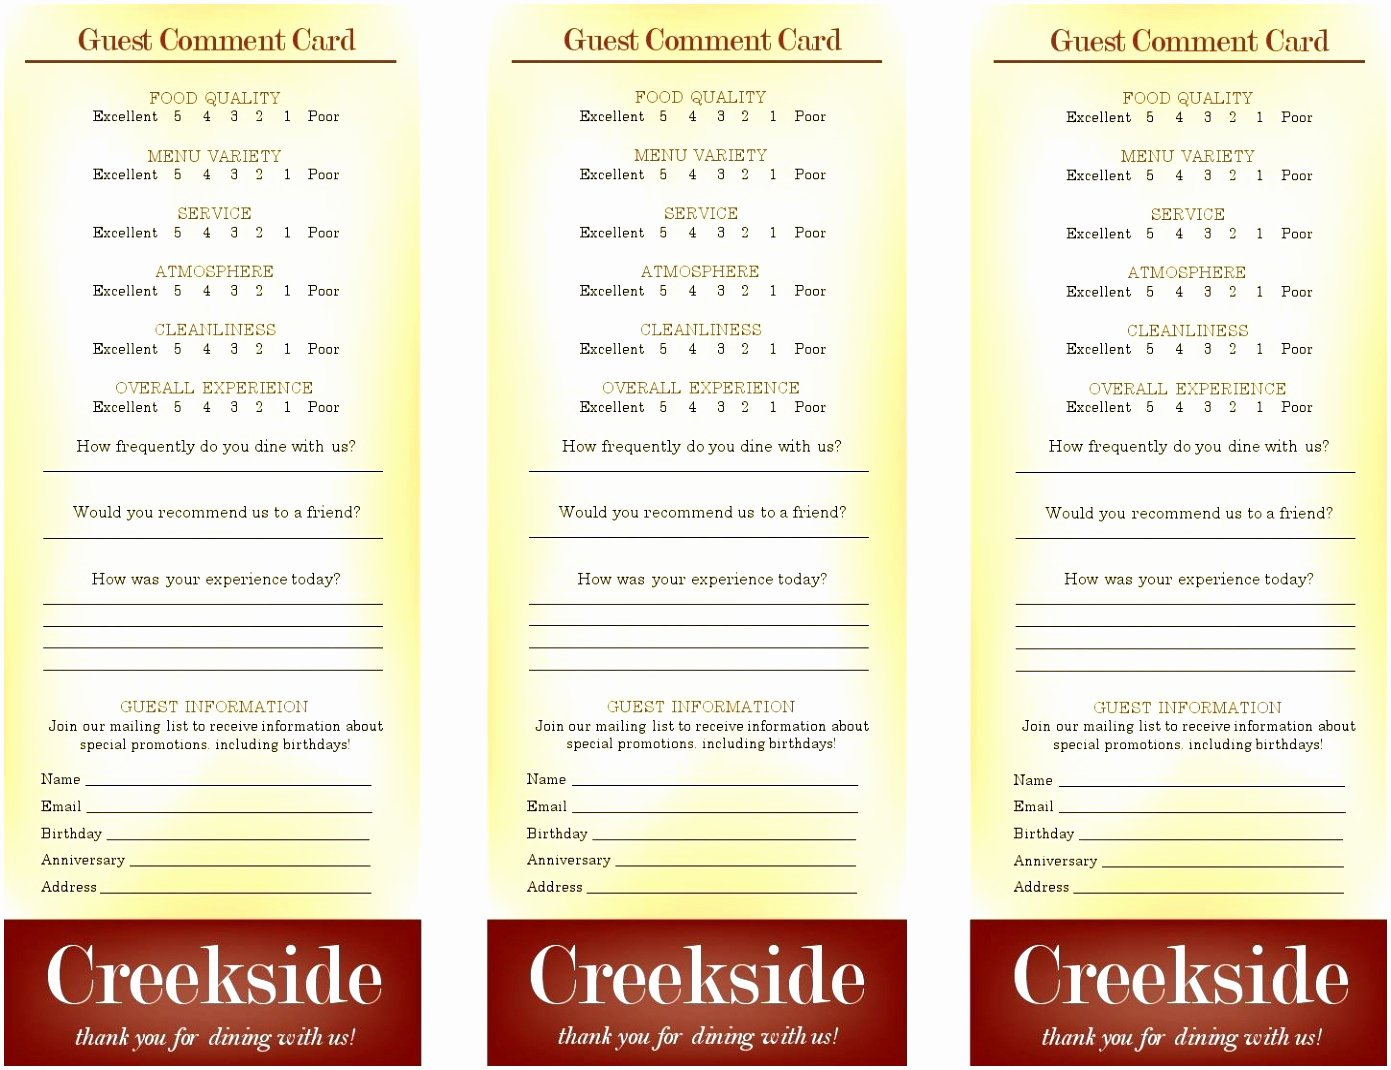 Restaurant Comment Card Template Unique Restaurant Ment Cards Free Restaurant Ment Card